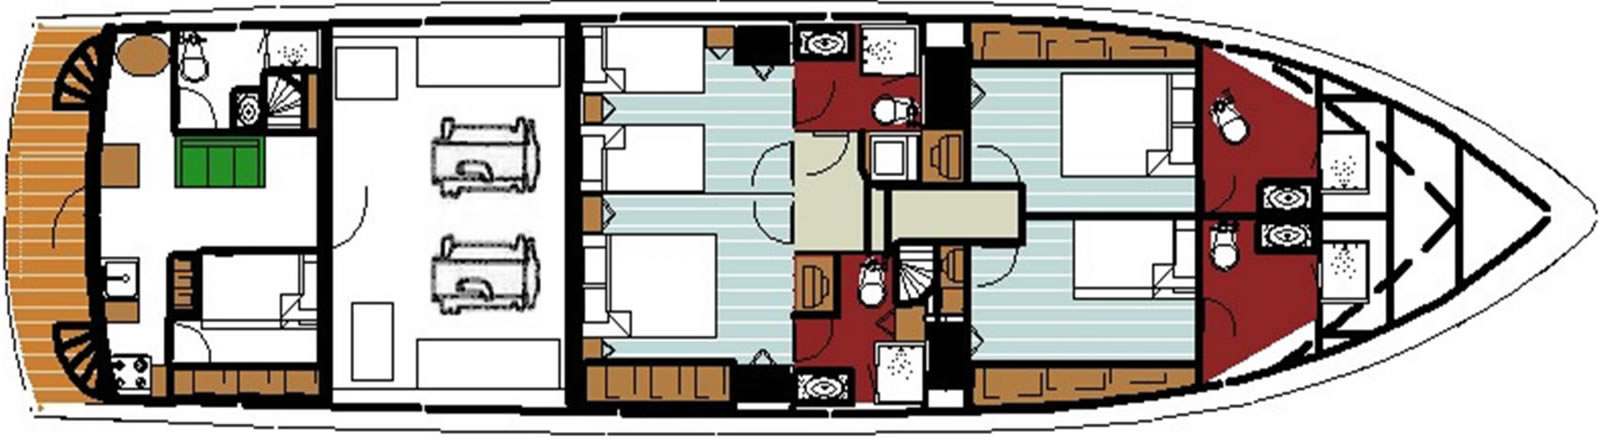 Ruby Expedition 80 House Forward Lower Deck - 4 Staterooms